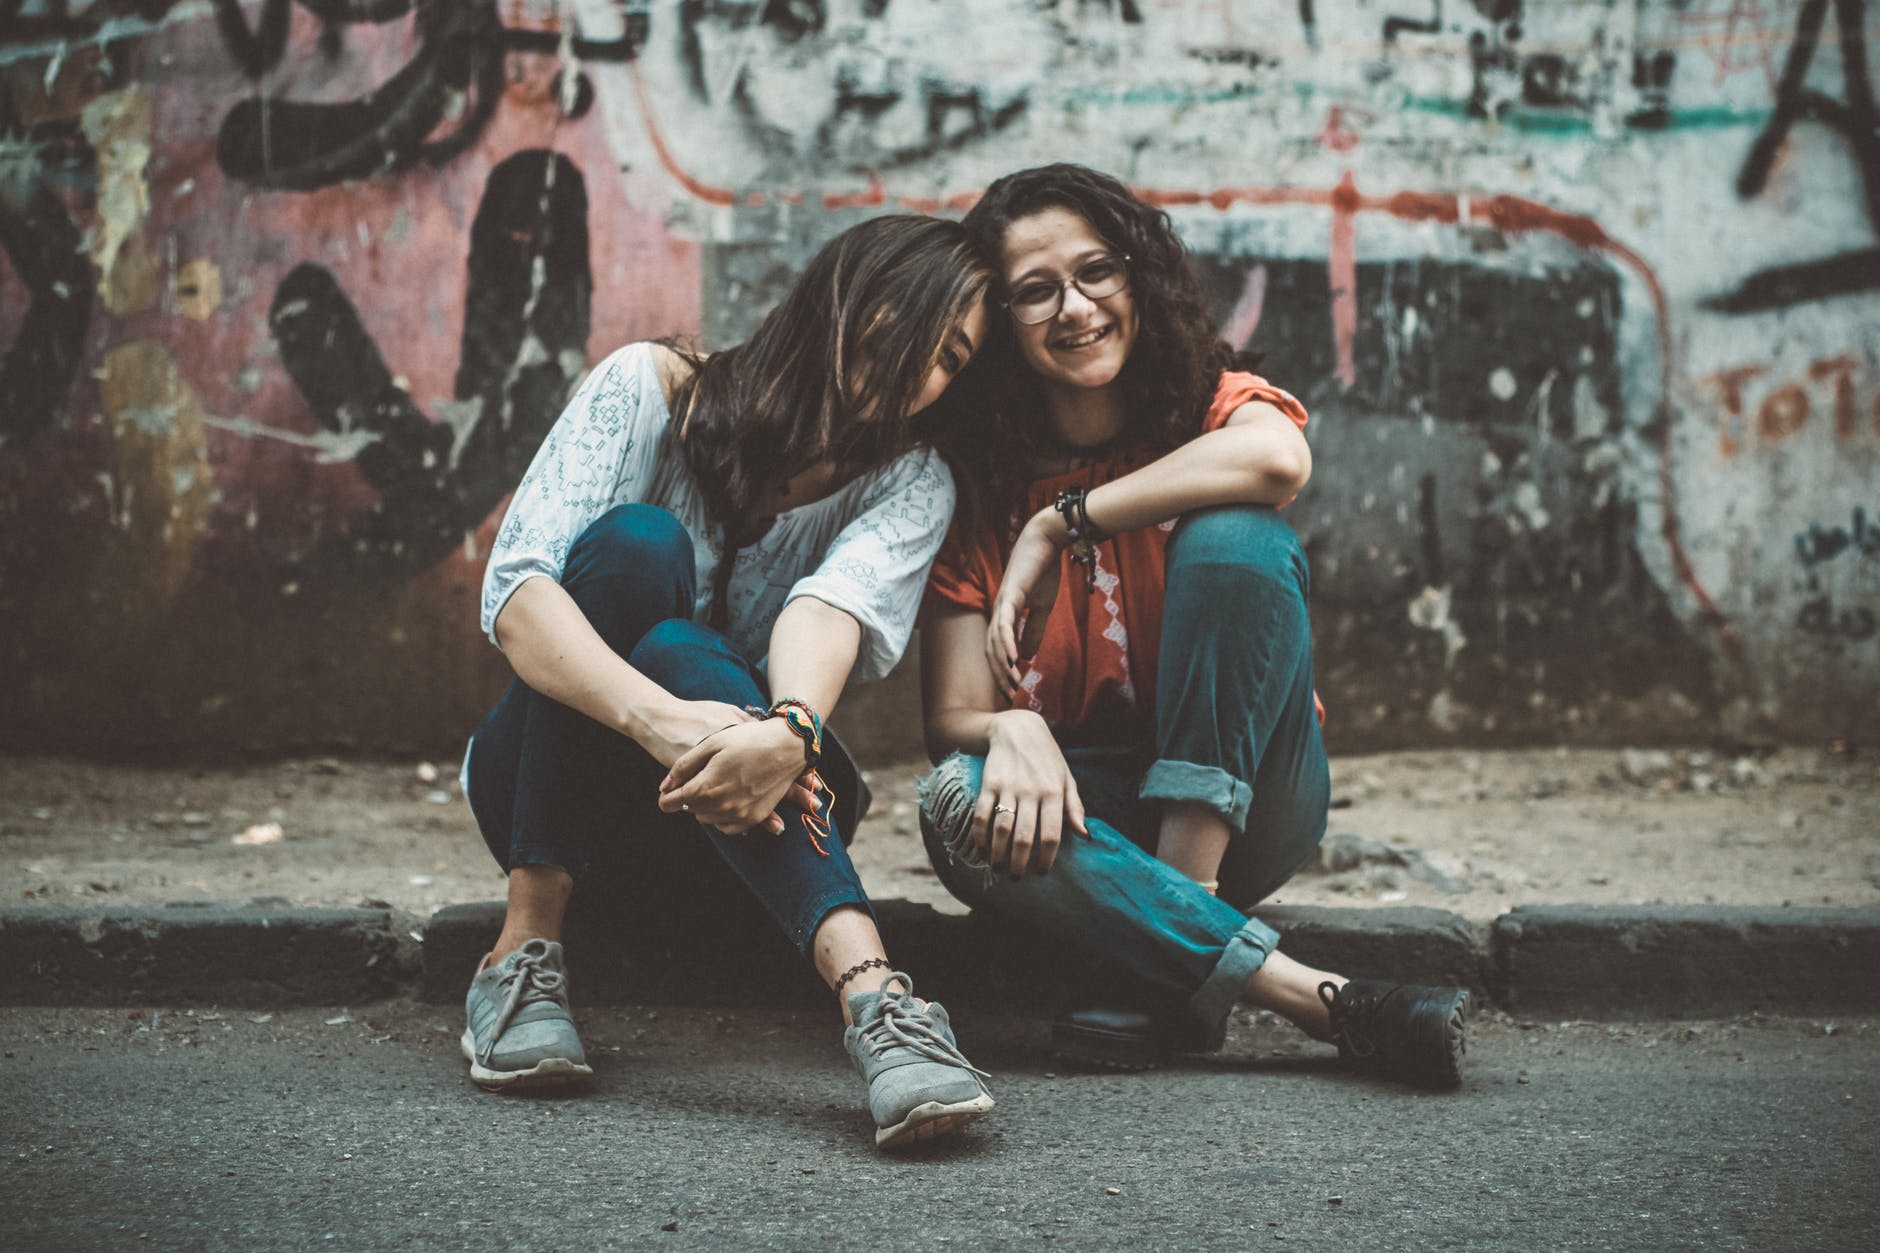 Two girls sitting on the street with graffiti laughing